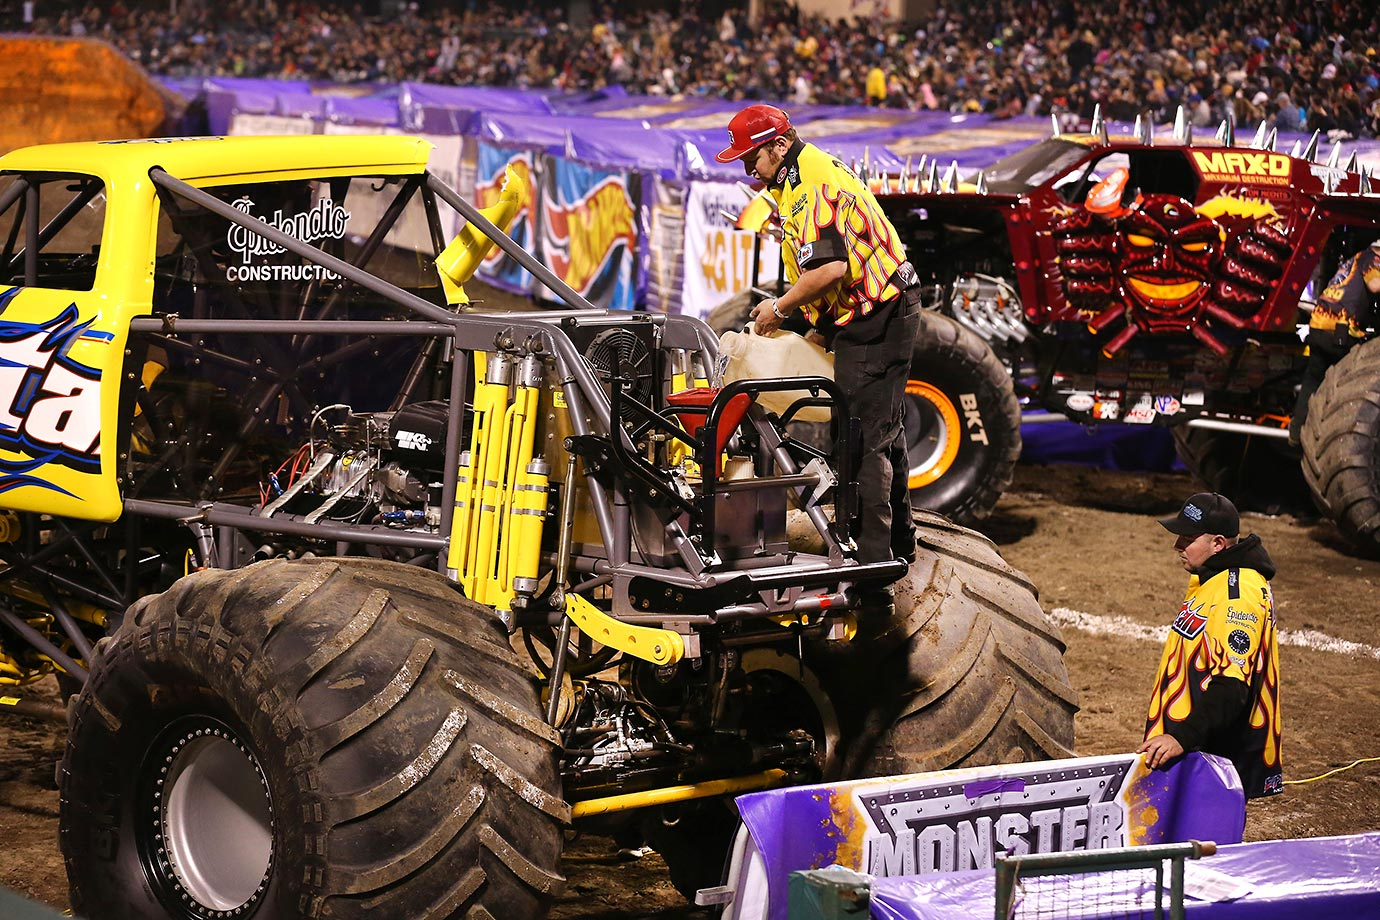 Members of Monster Truck 'TItan' crew fill the gas tank during a break in the competition.